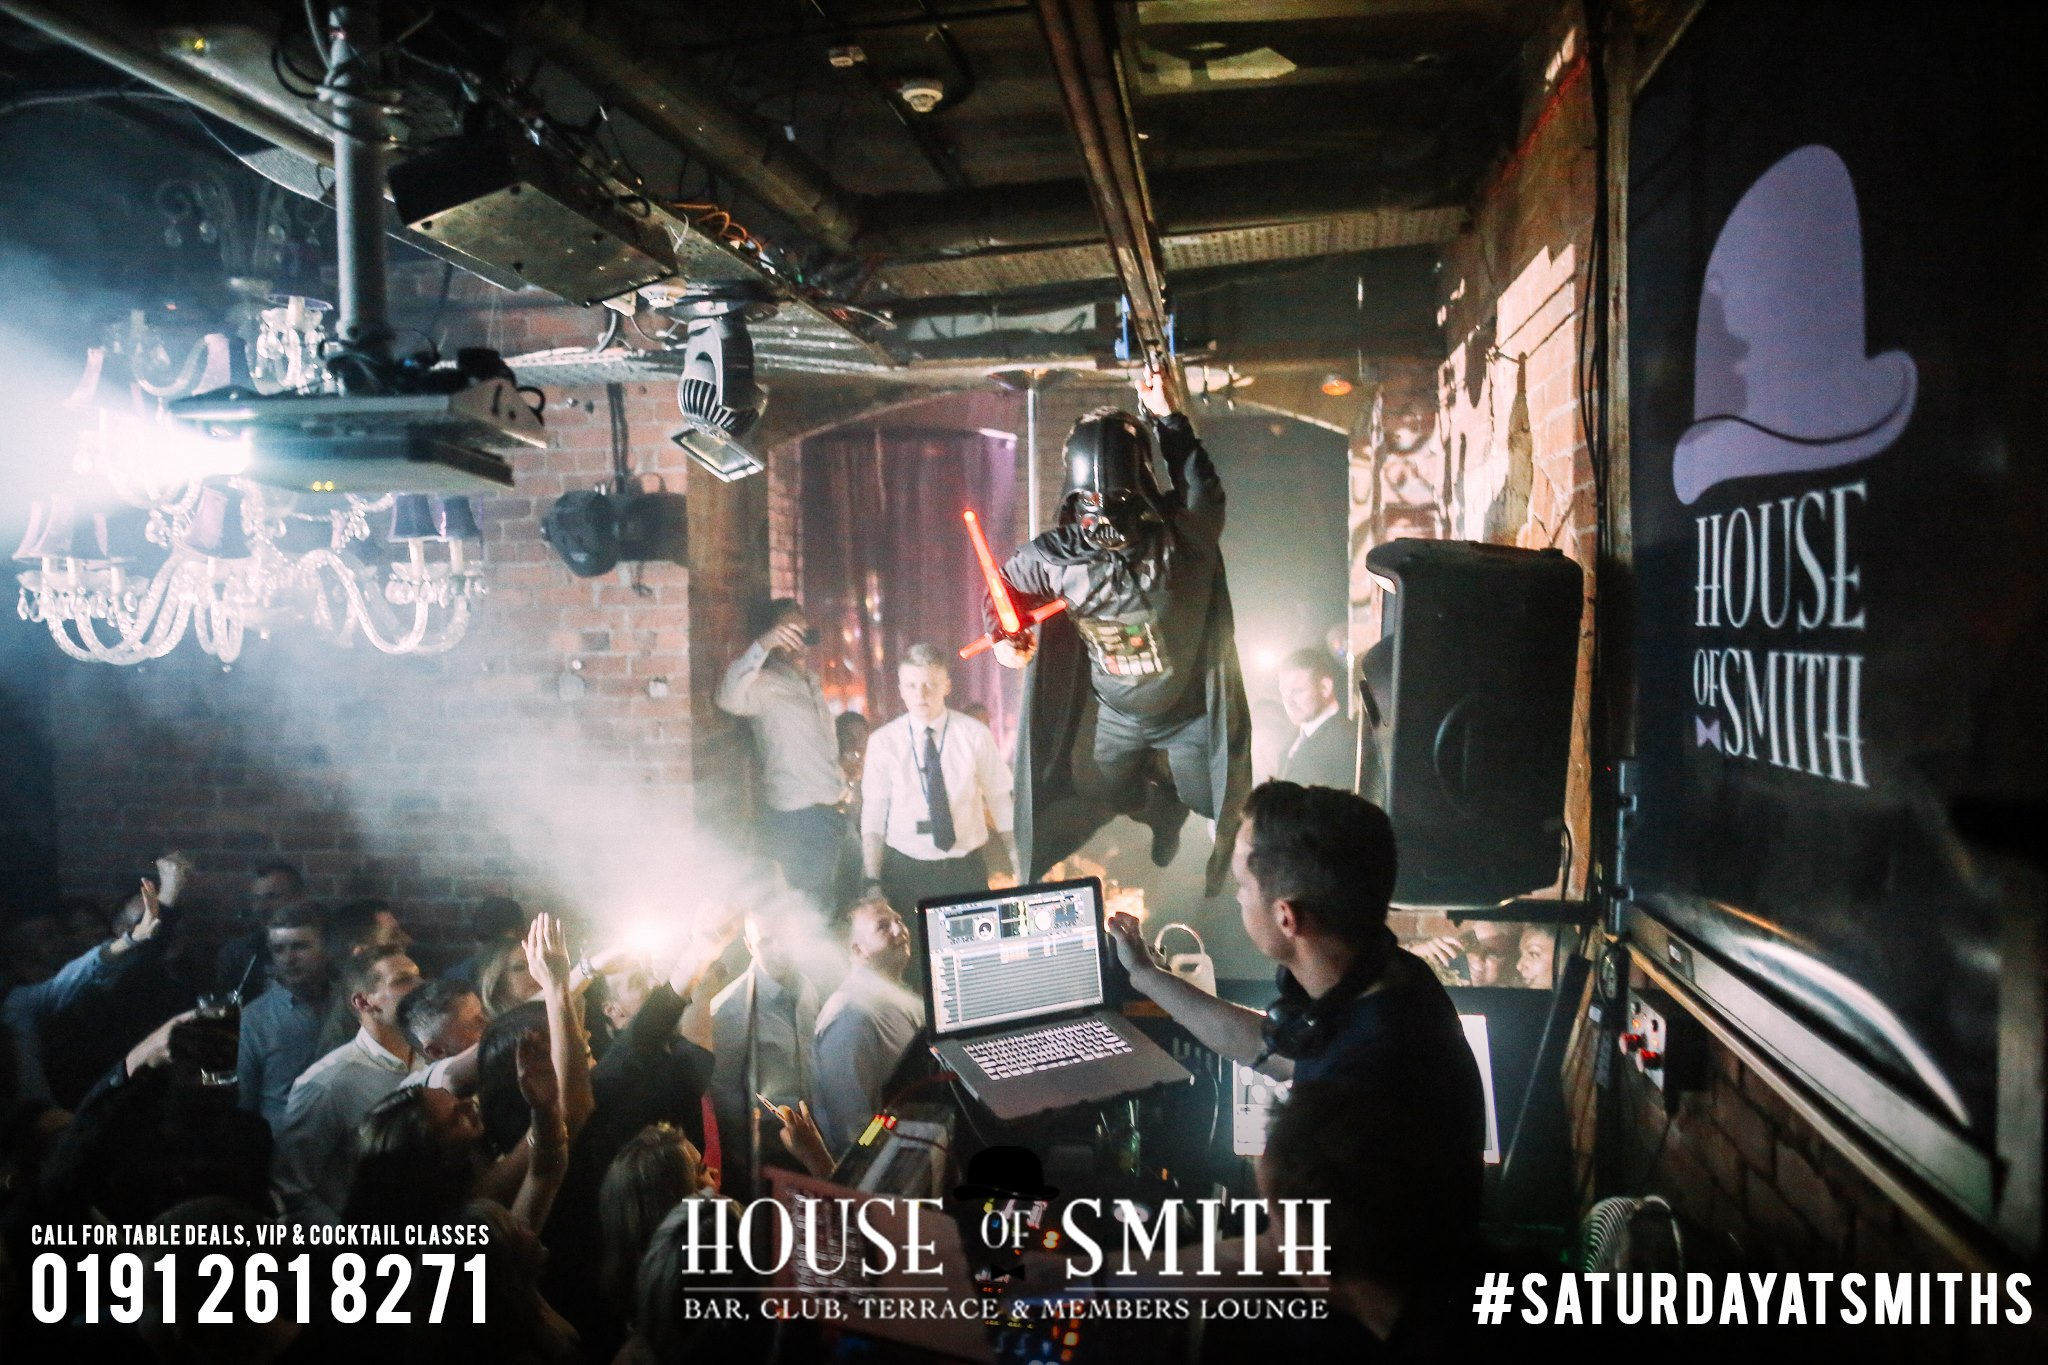 House of Smith Bar Review, with an image of people on the dance floor at House of Smith as a dwarf dressed as Darth Vader flies over the DJ booth